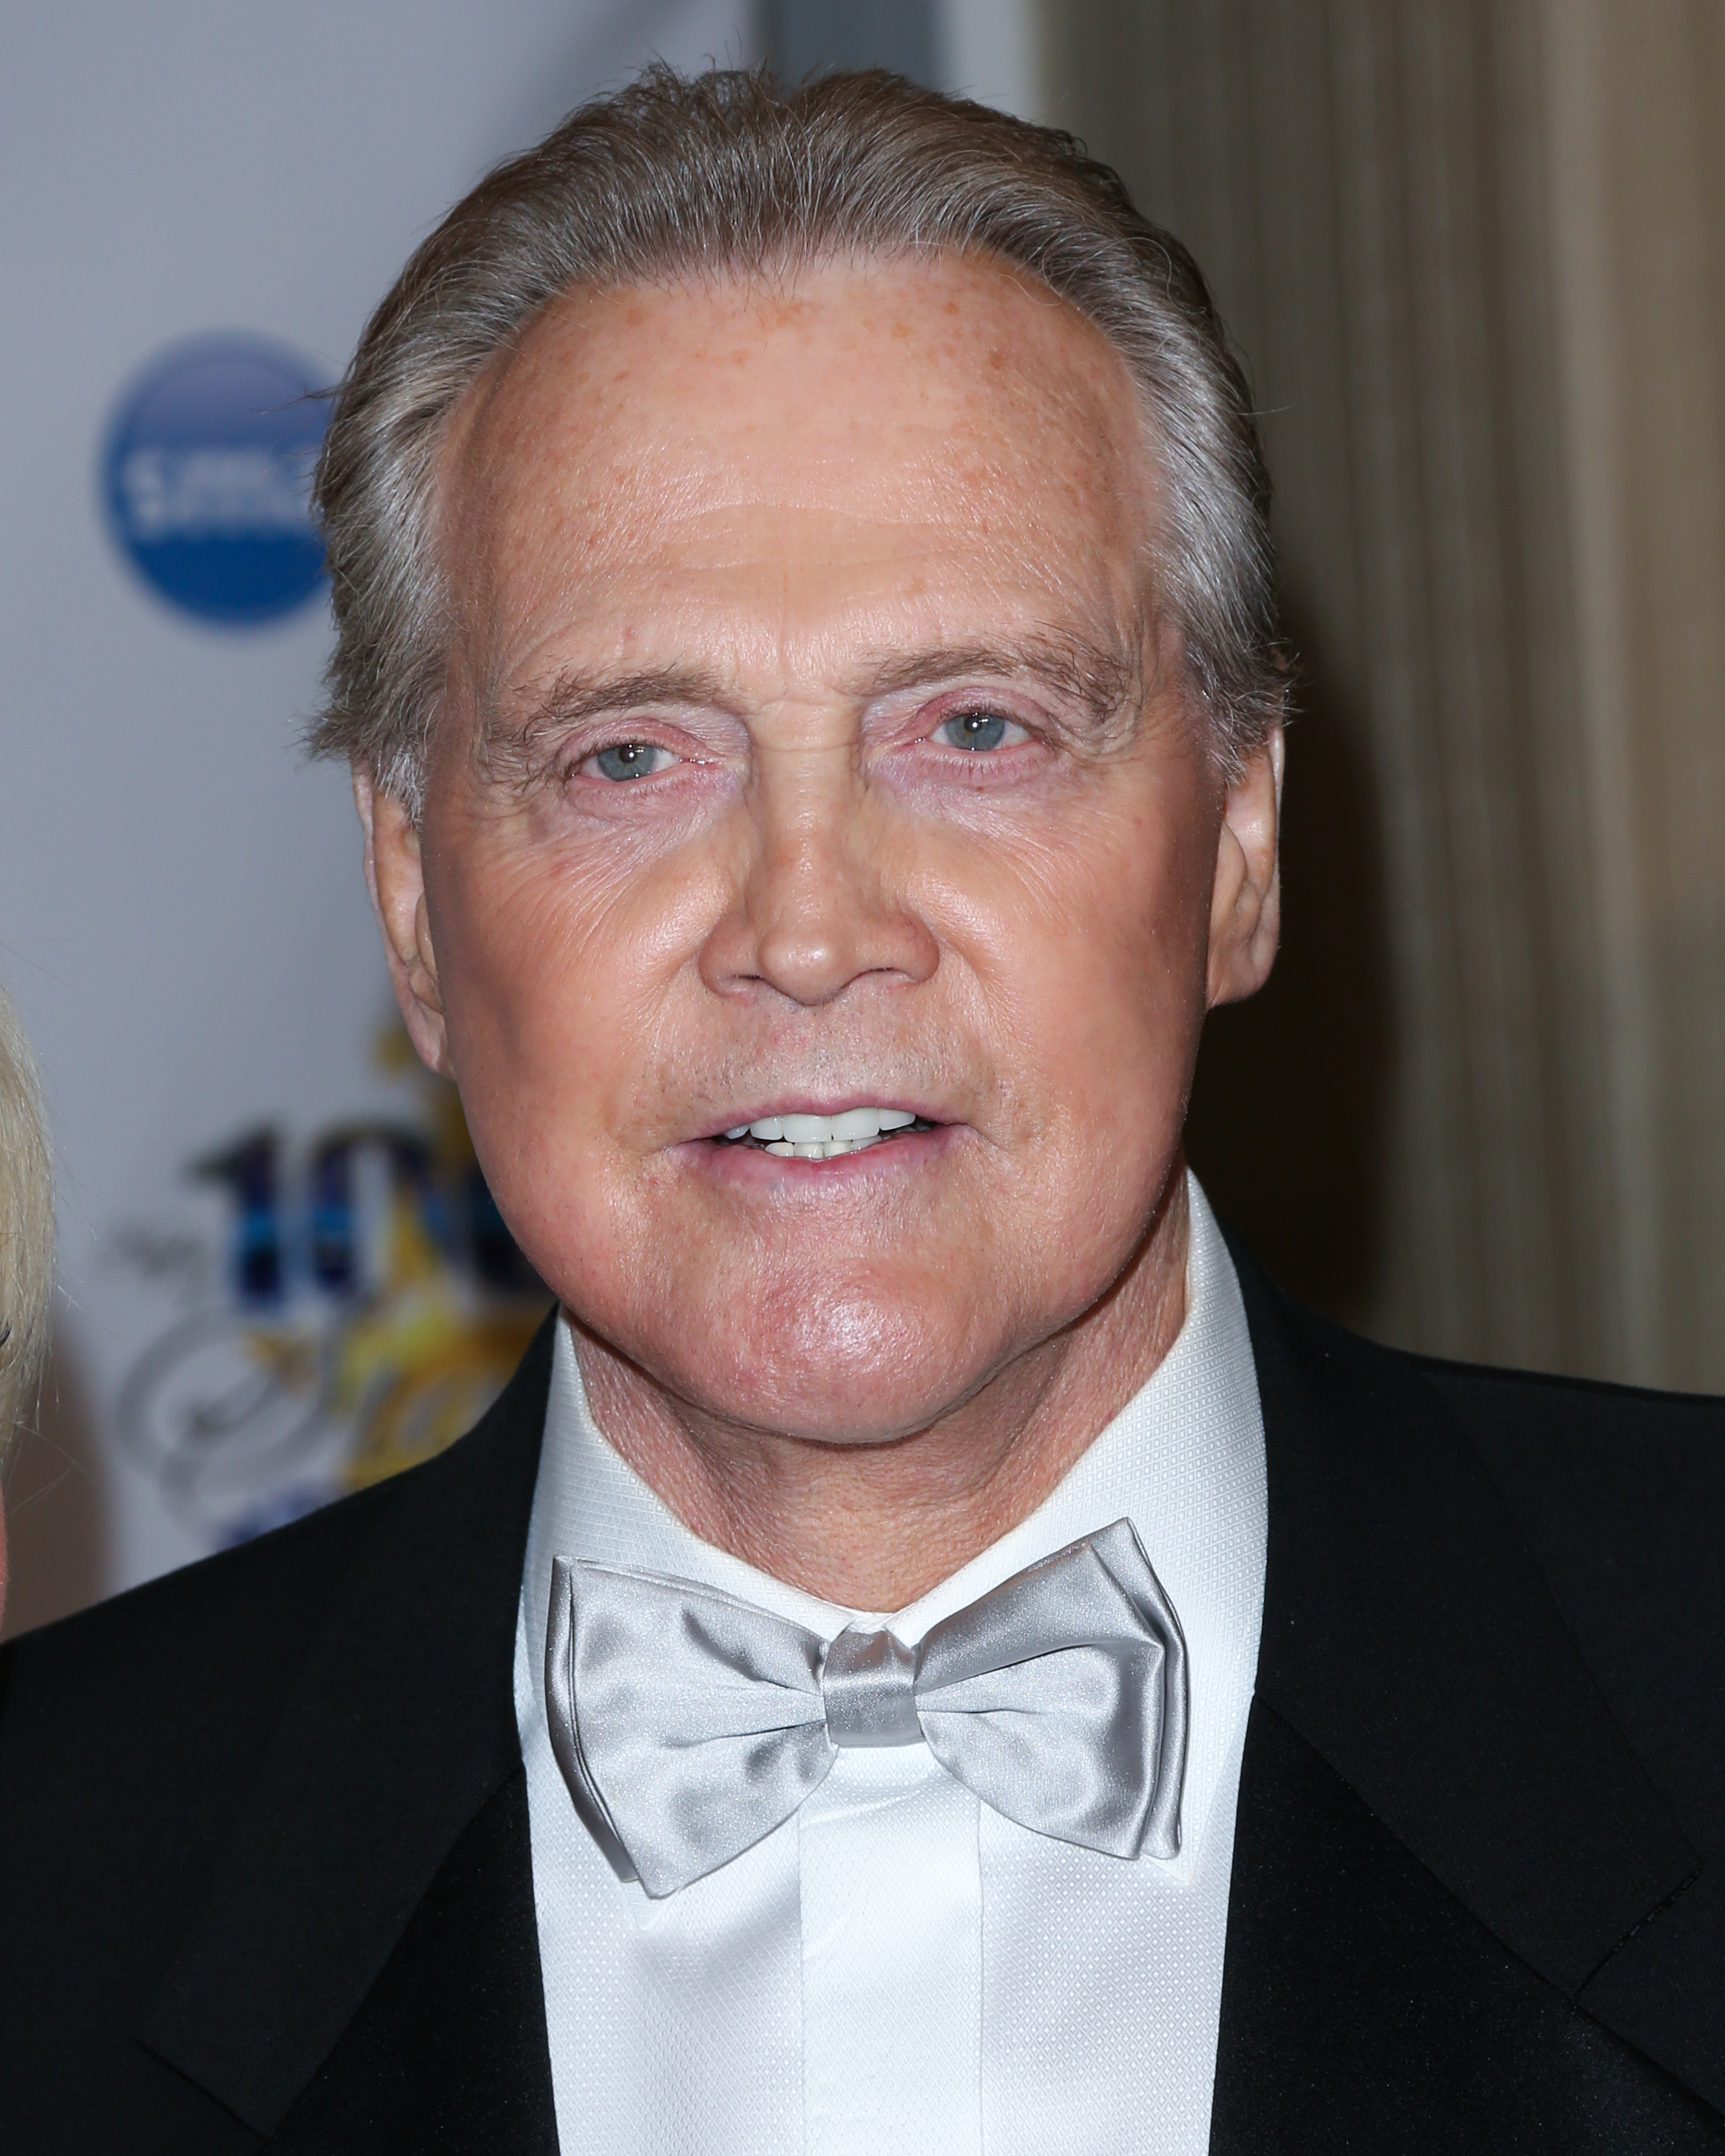 Dallas: Lee Majors On How Larry Hagman Helped Lead Him To